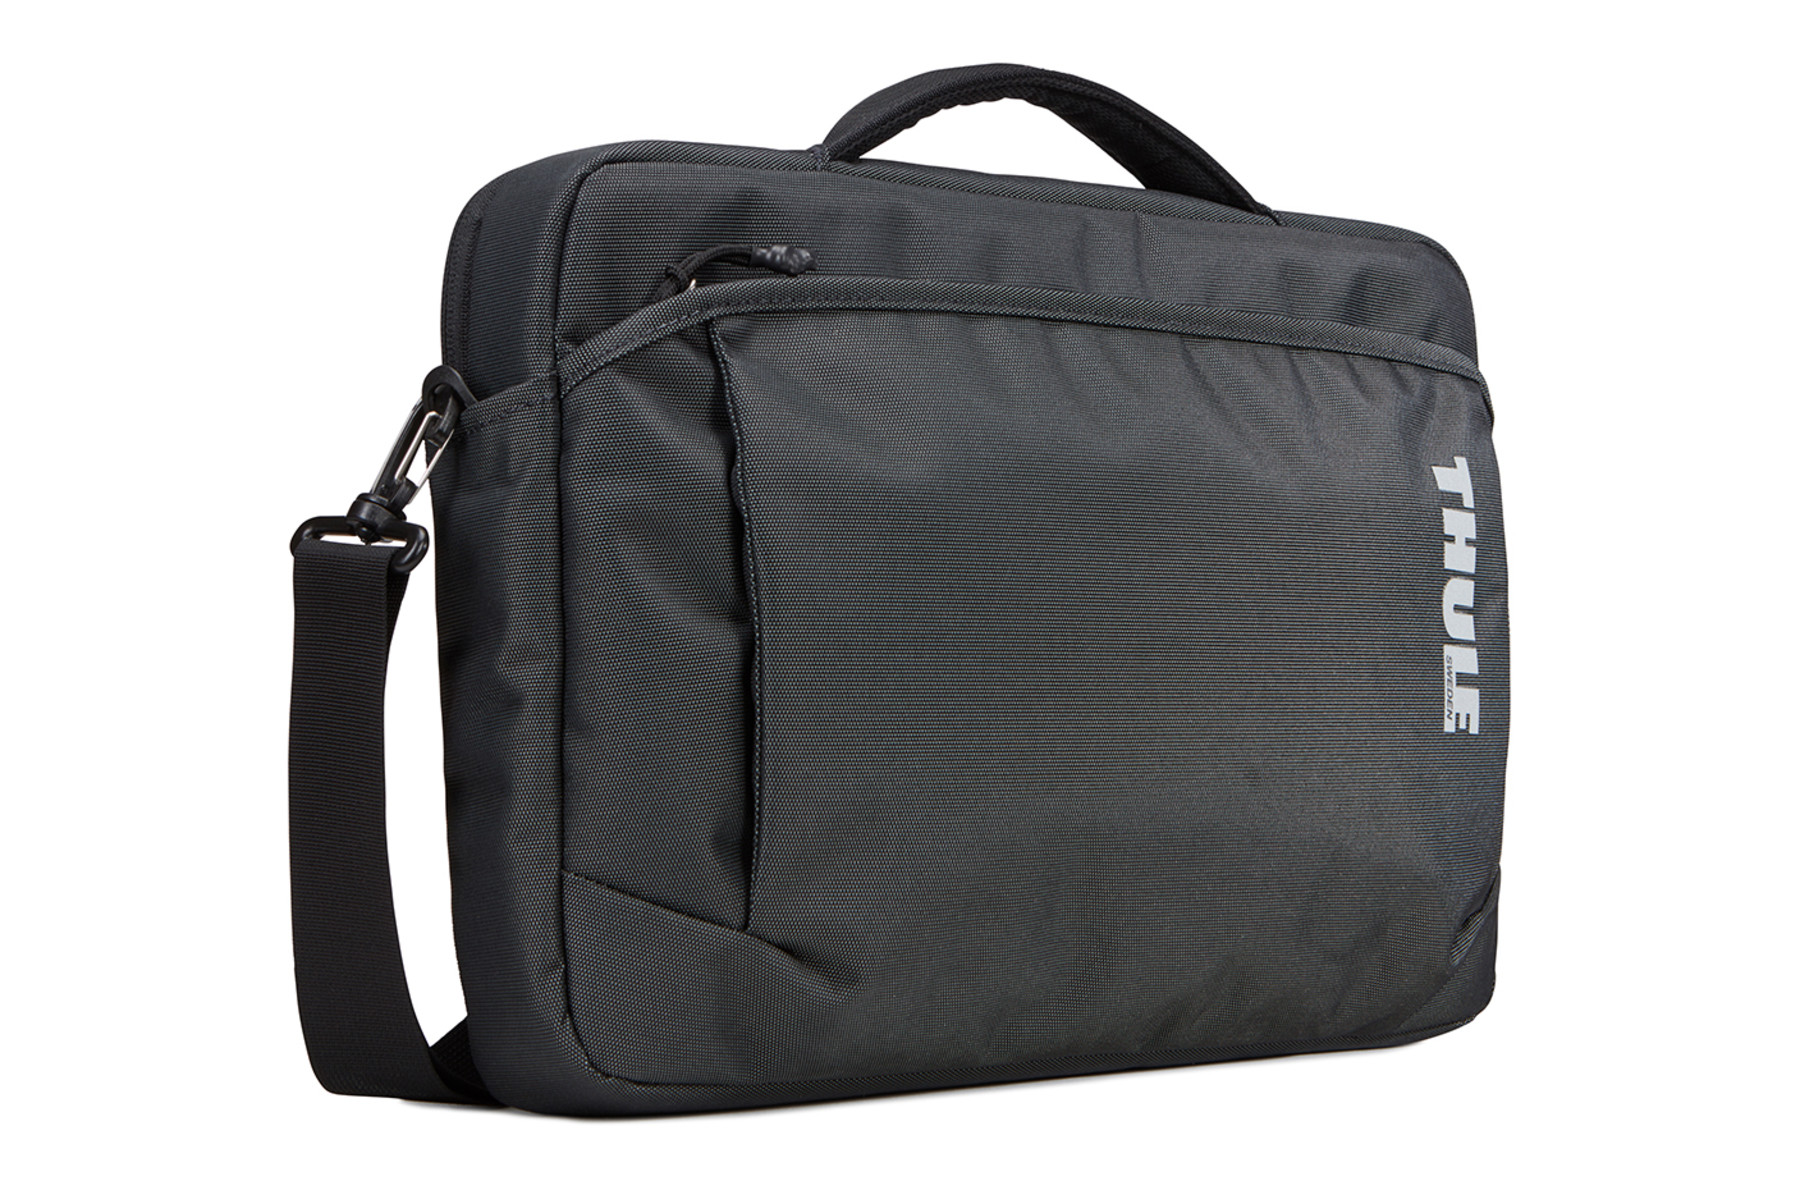 aa9d60b8ecad Thule Subterra MacBook Attaché 13